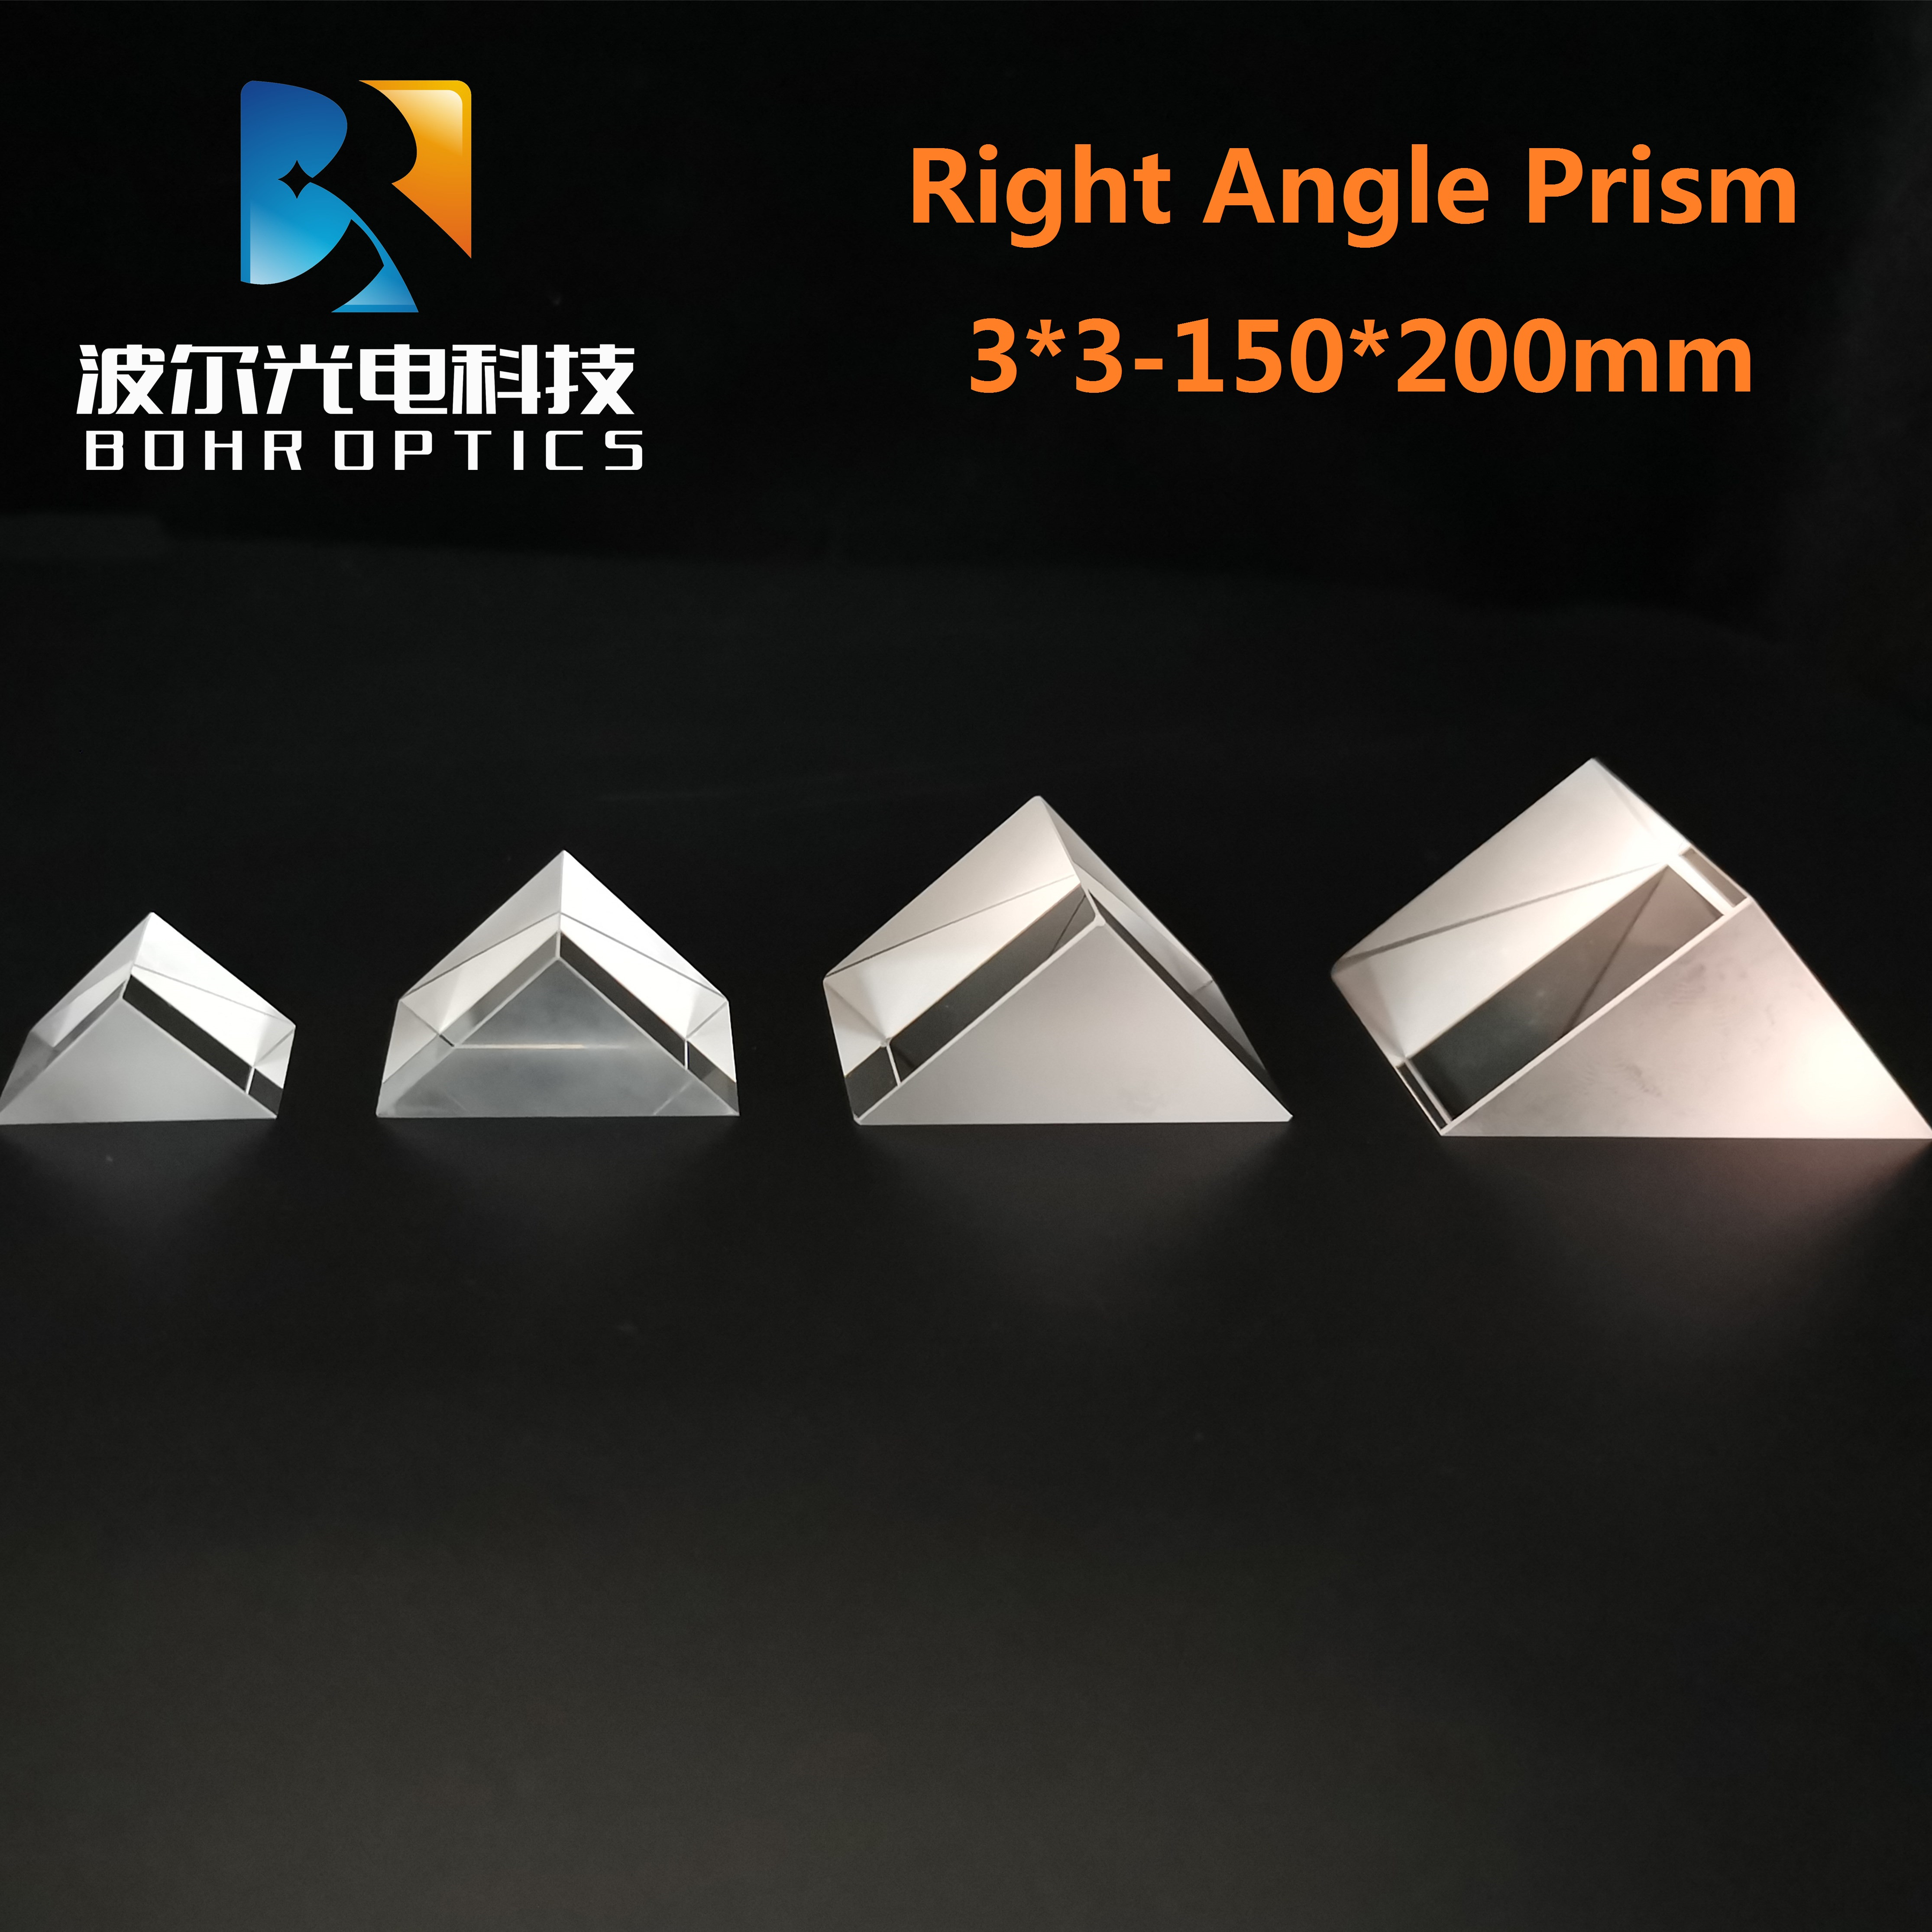 10x10x10mm Right Angle Prism N-BK7 (K9) Optical Components Glass for Precision Optical Instruments